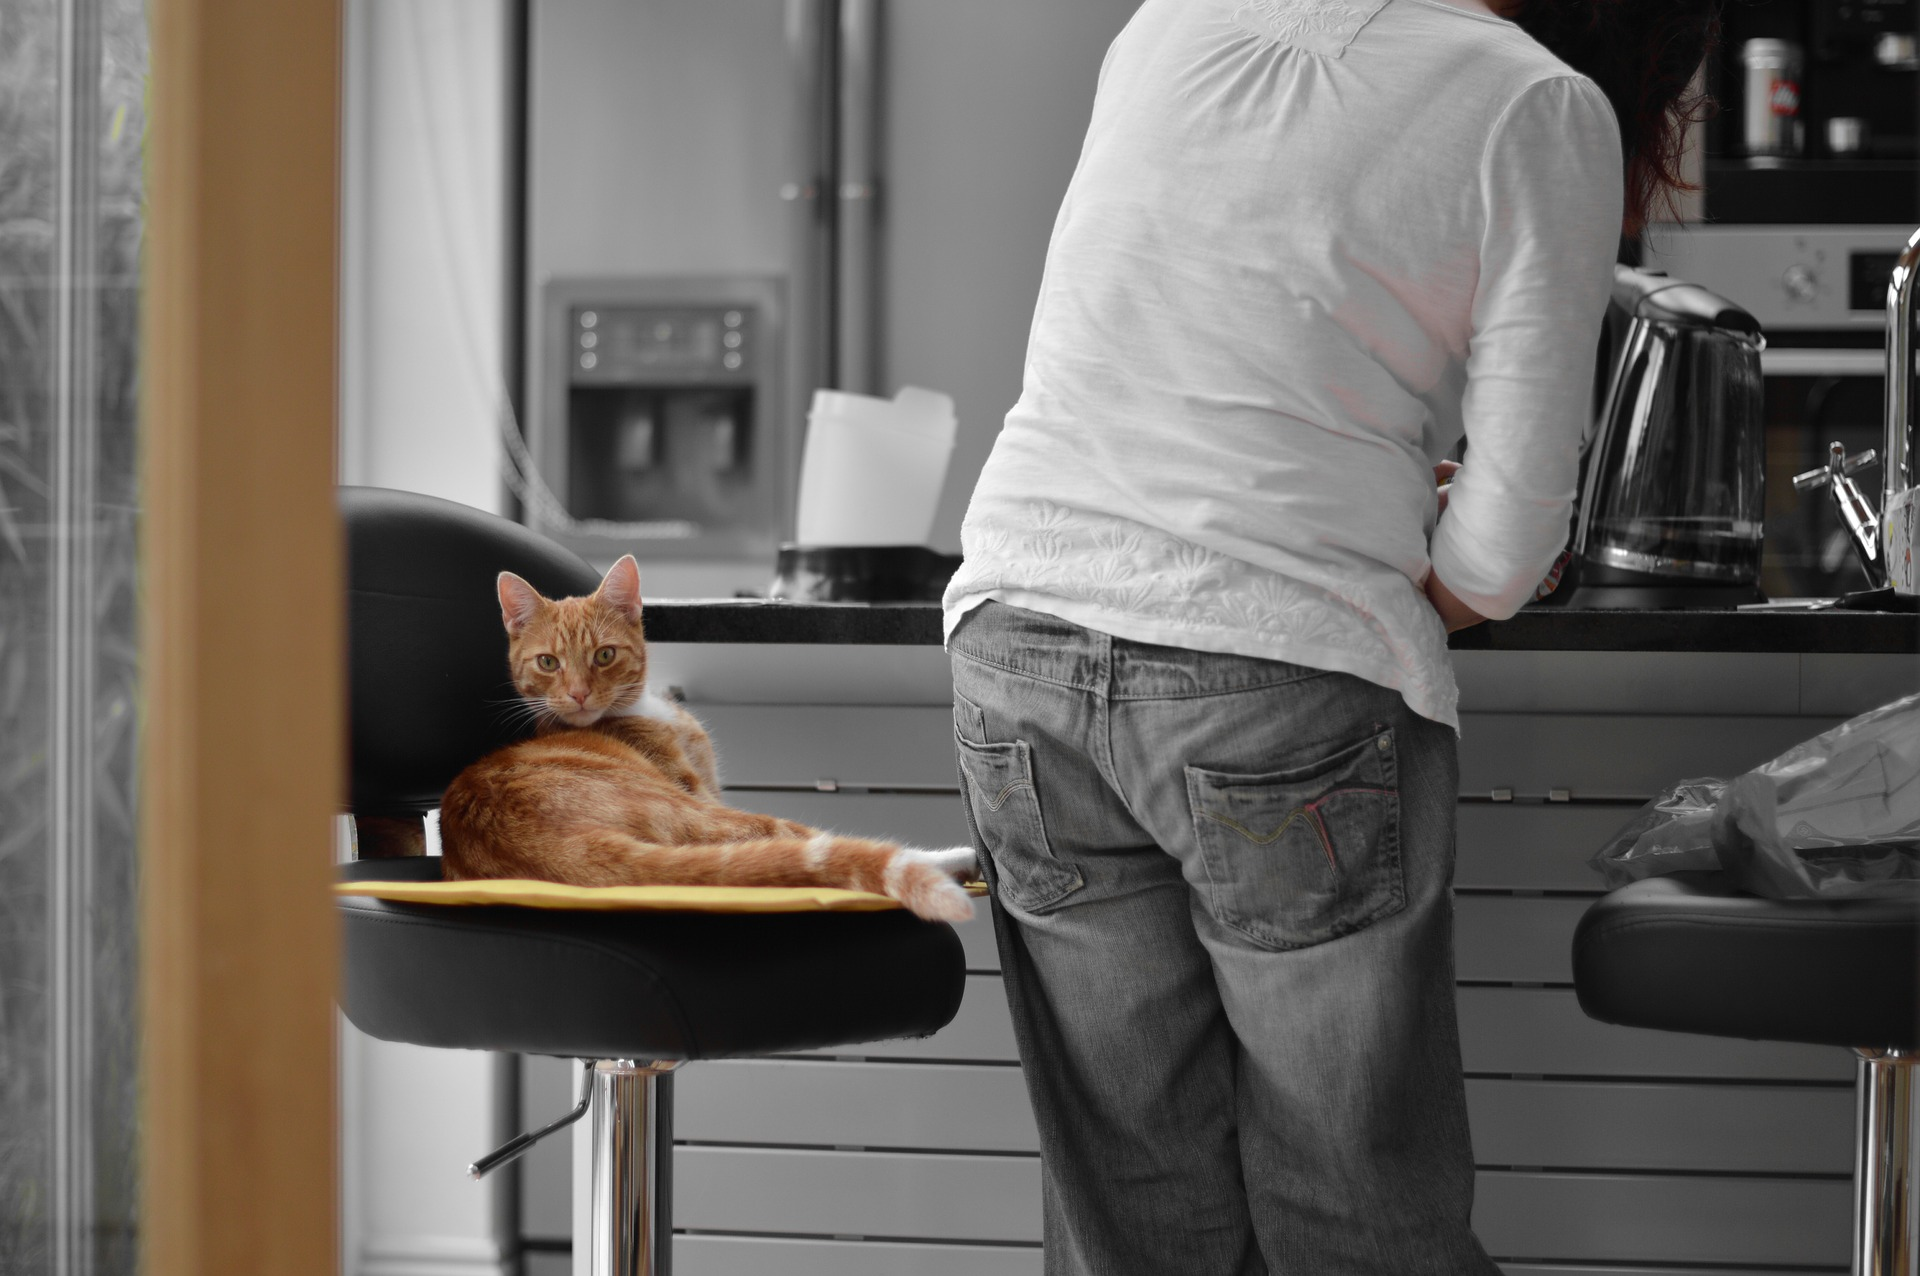 Pet-Proofing the Cabinets